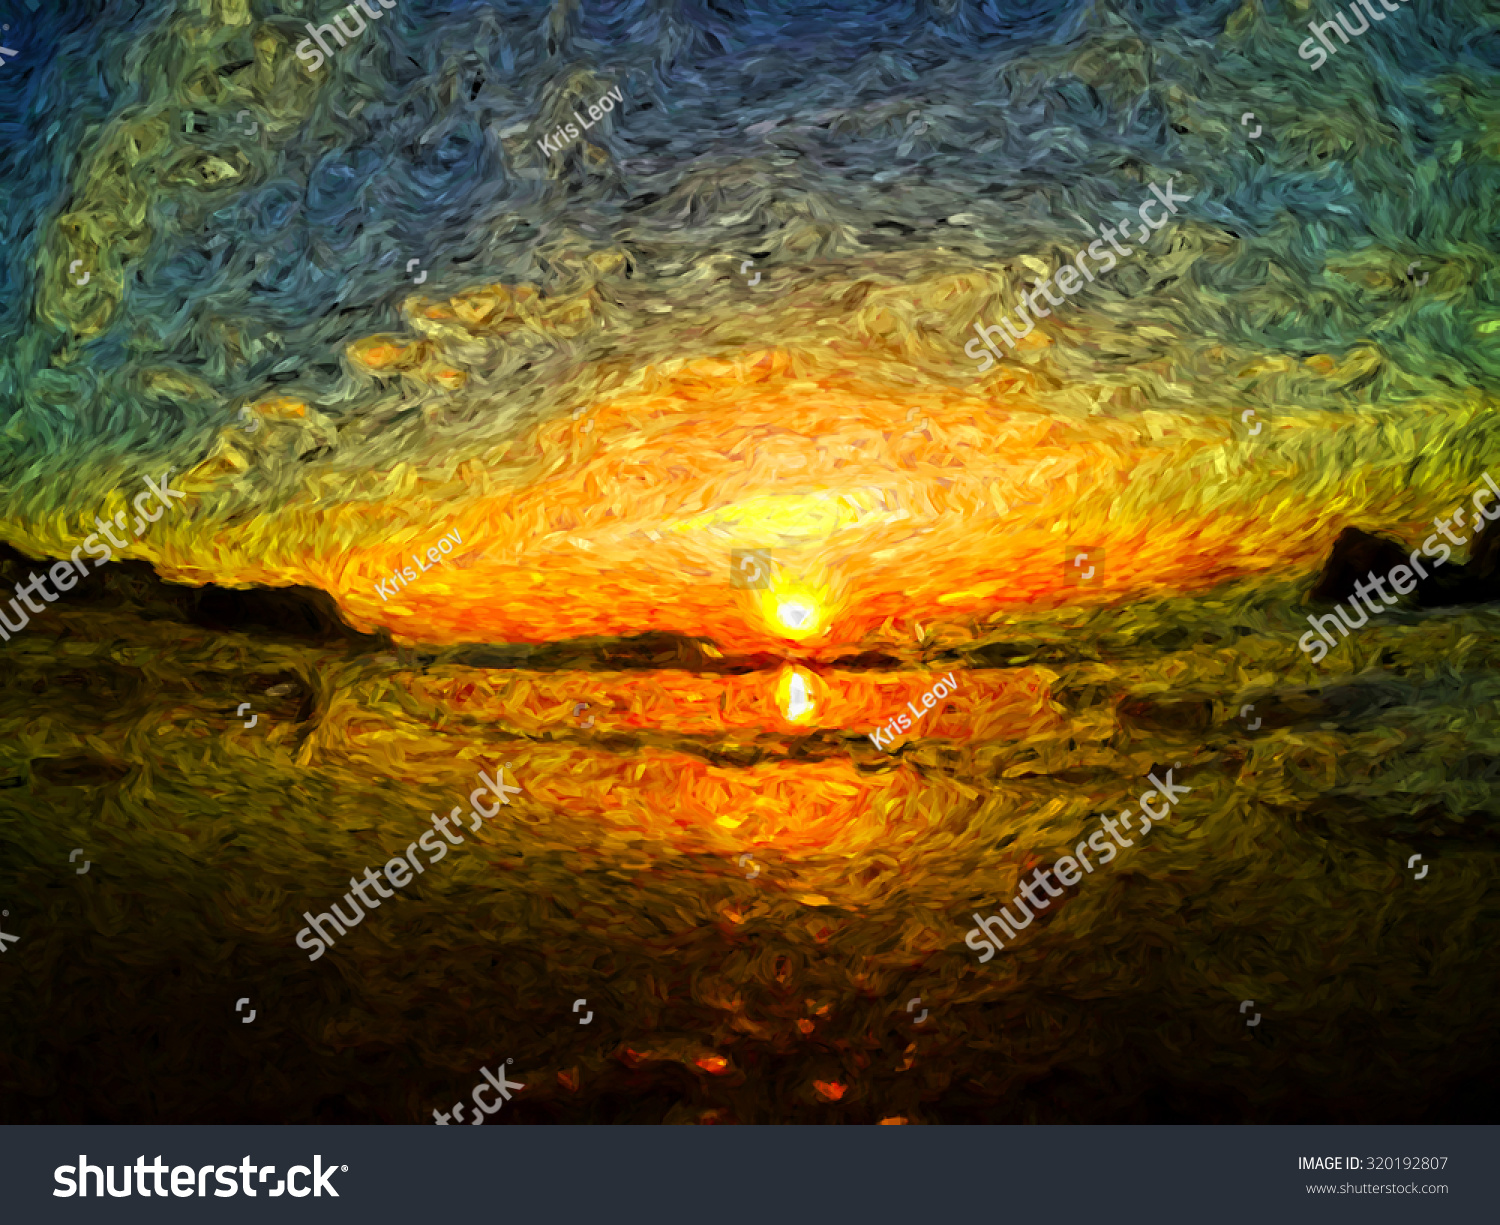 landscape sunset drawing. sea sunrise or sunset clouds and waves impressionism oil painting brush drawing landscape